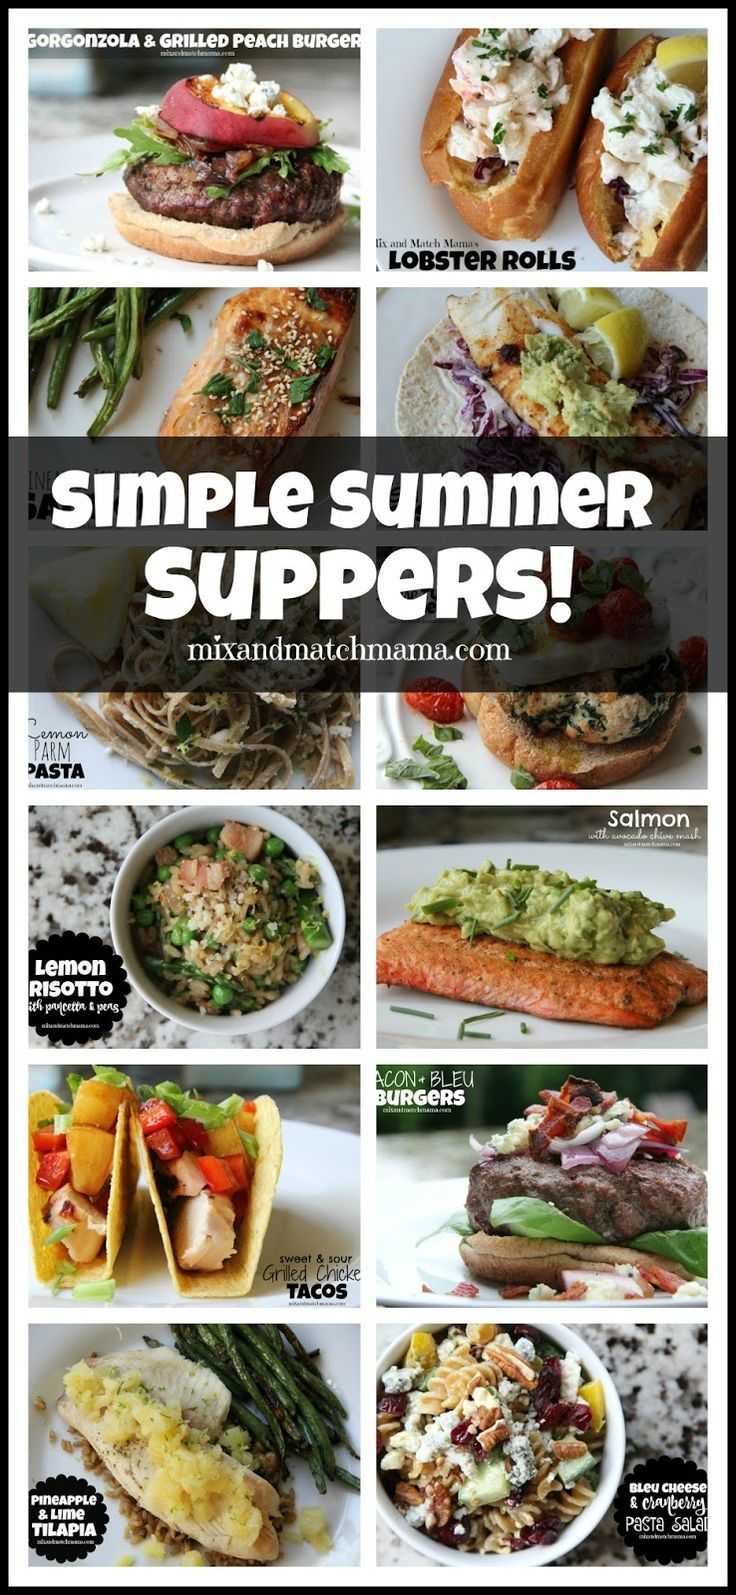 644 best images about Quick and Simple Recipes on Pinterest ...